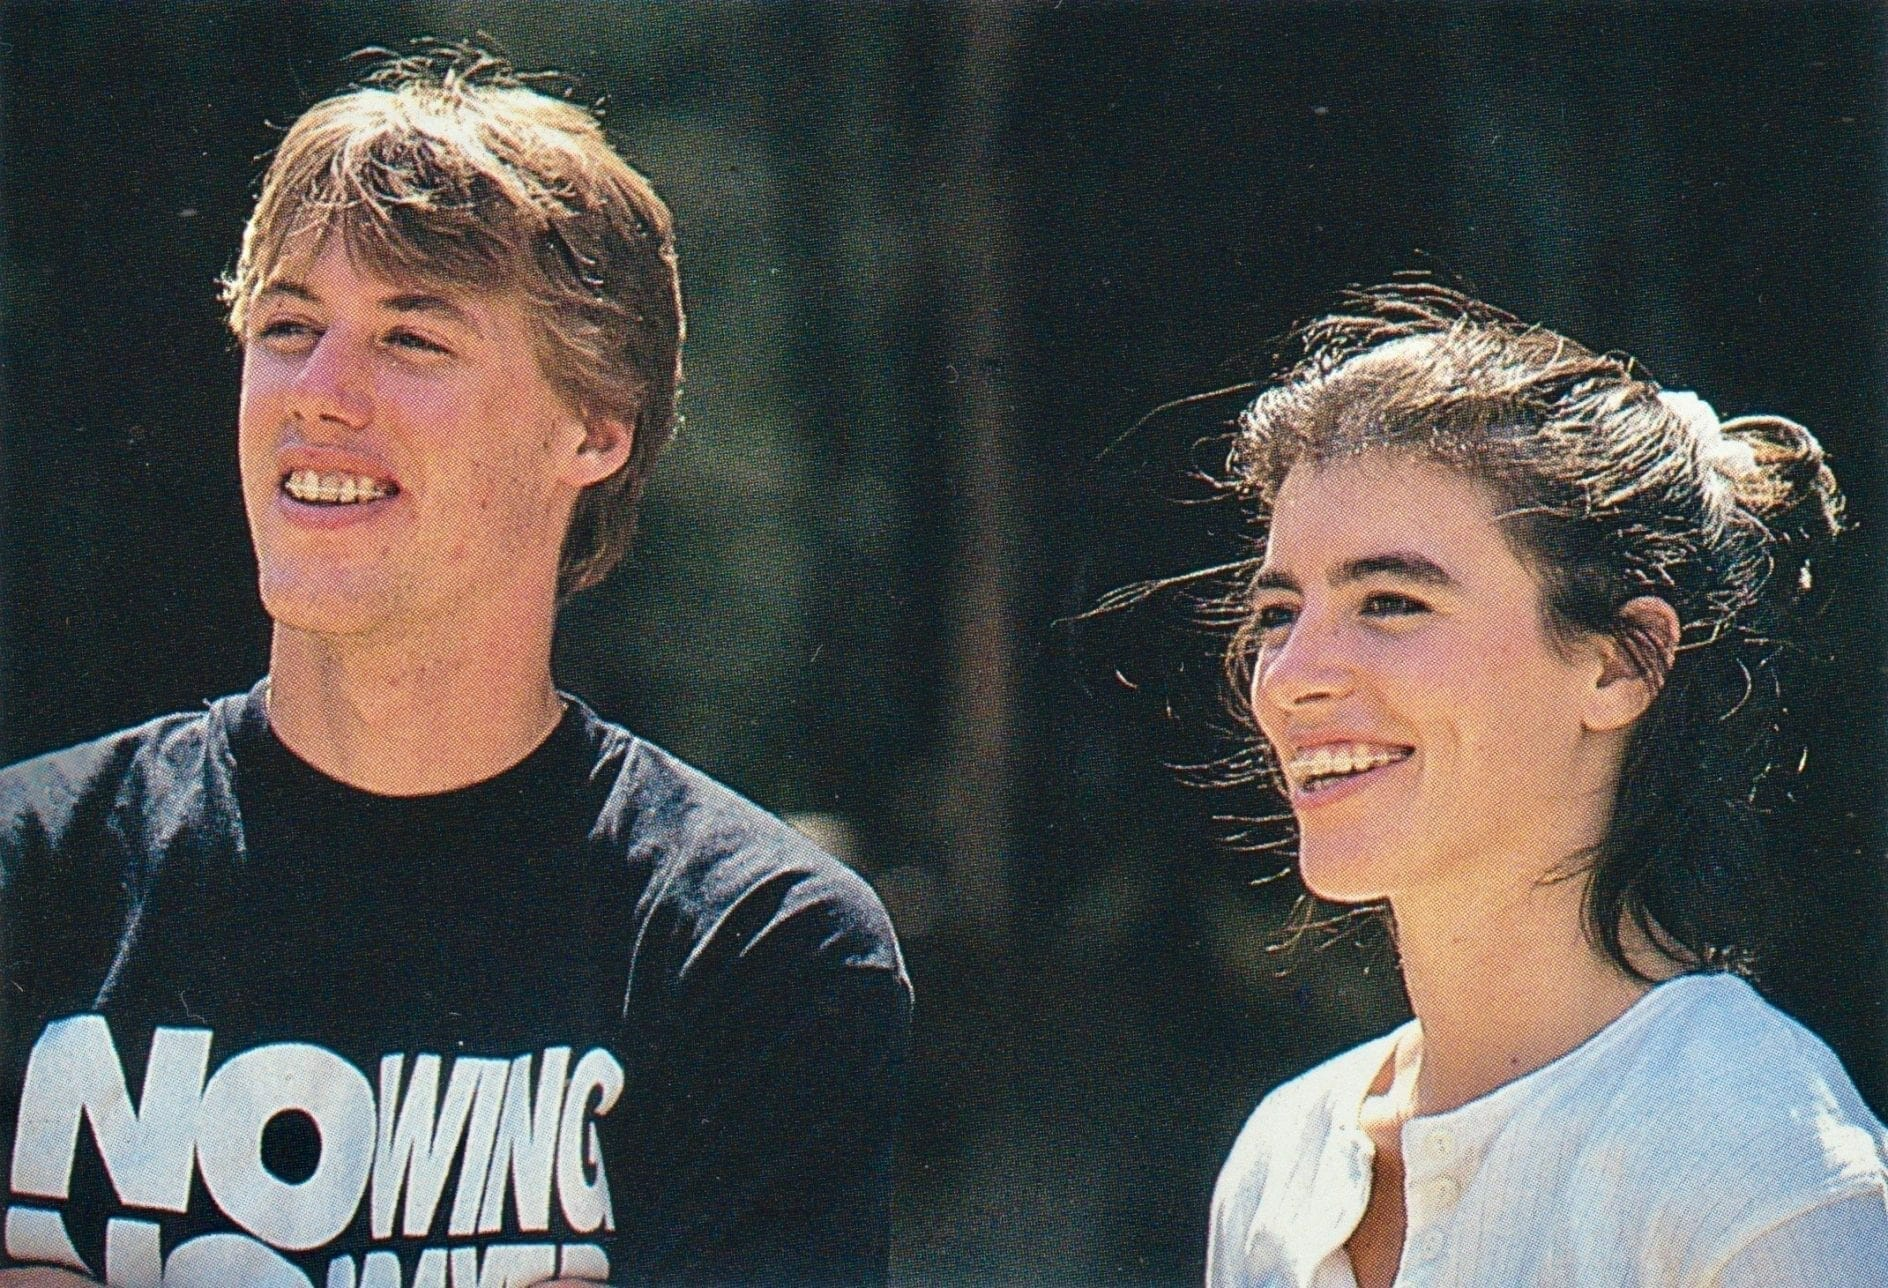 Doug Henry and Stacey Johnstone (before wedding) in 1993. Davey Coombs photo via Inside Motocross